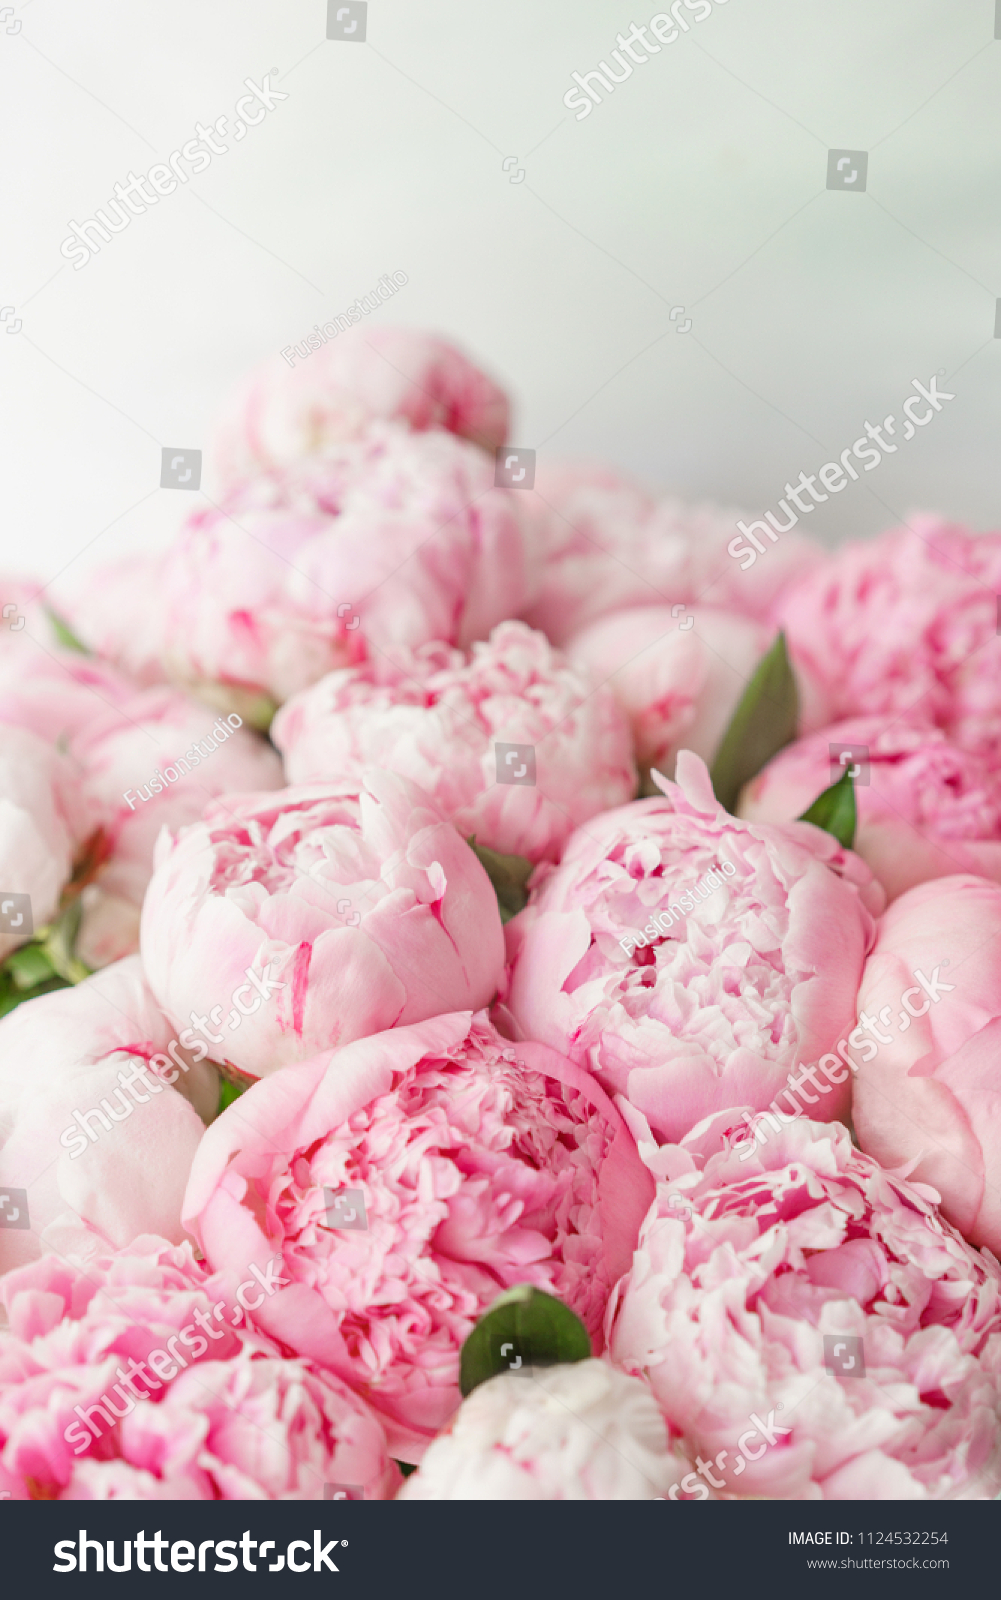 Wallpaper Lovely Flowers Pink Peonies Floral Stock Photo Edit Now